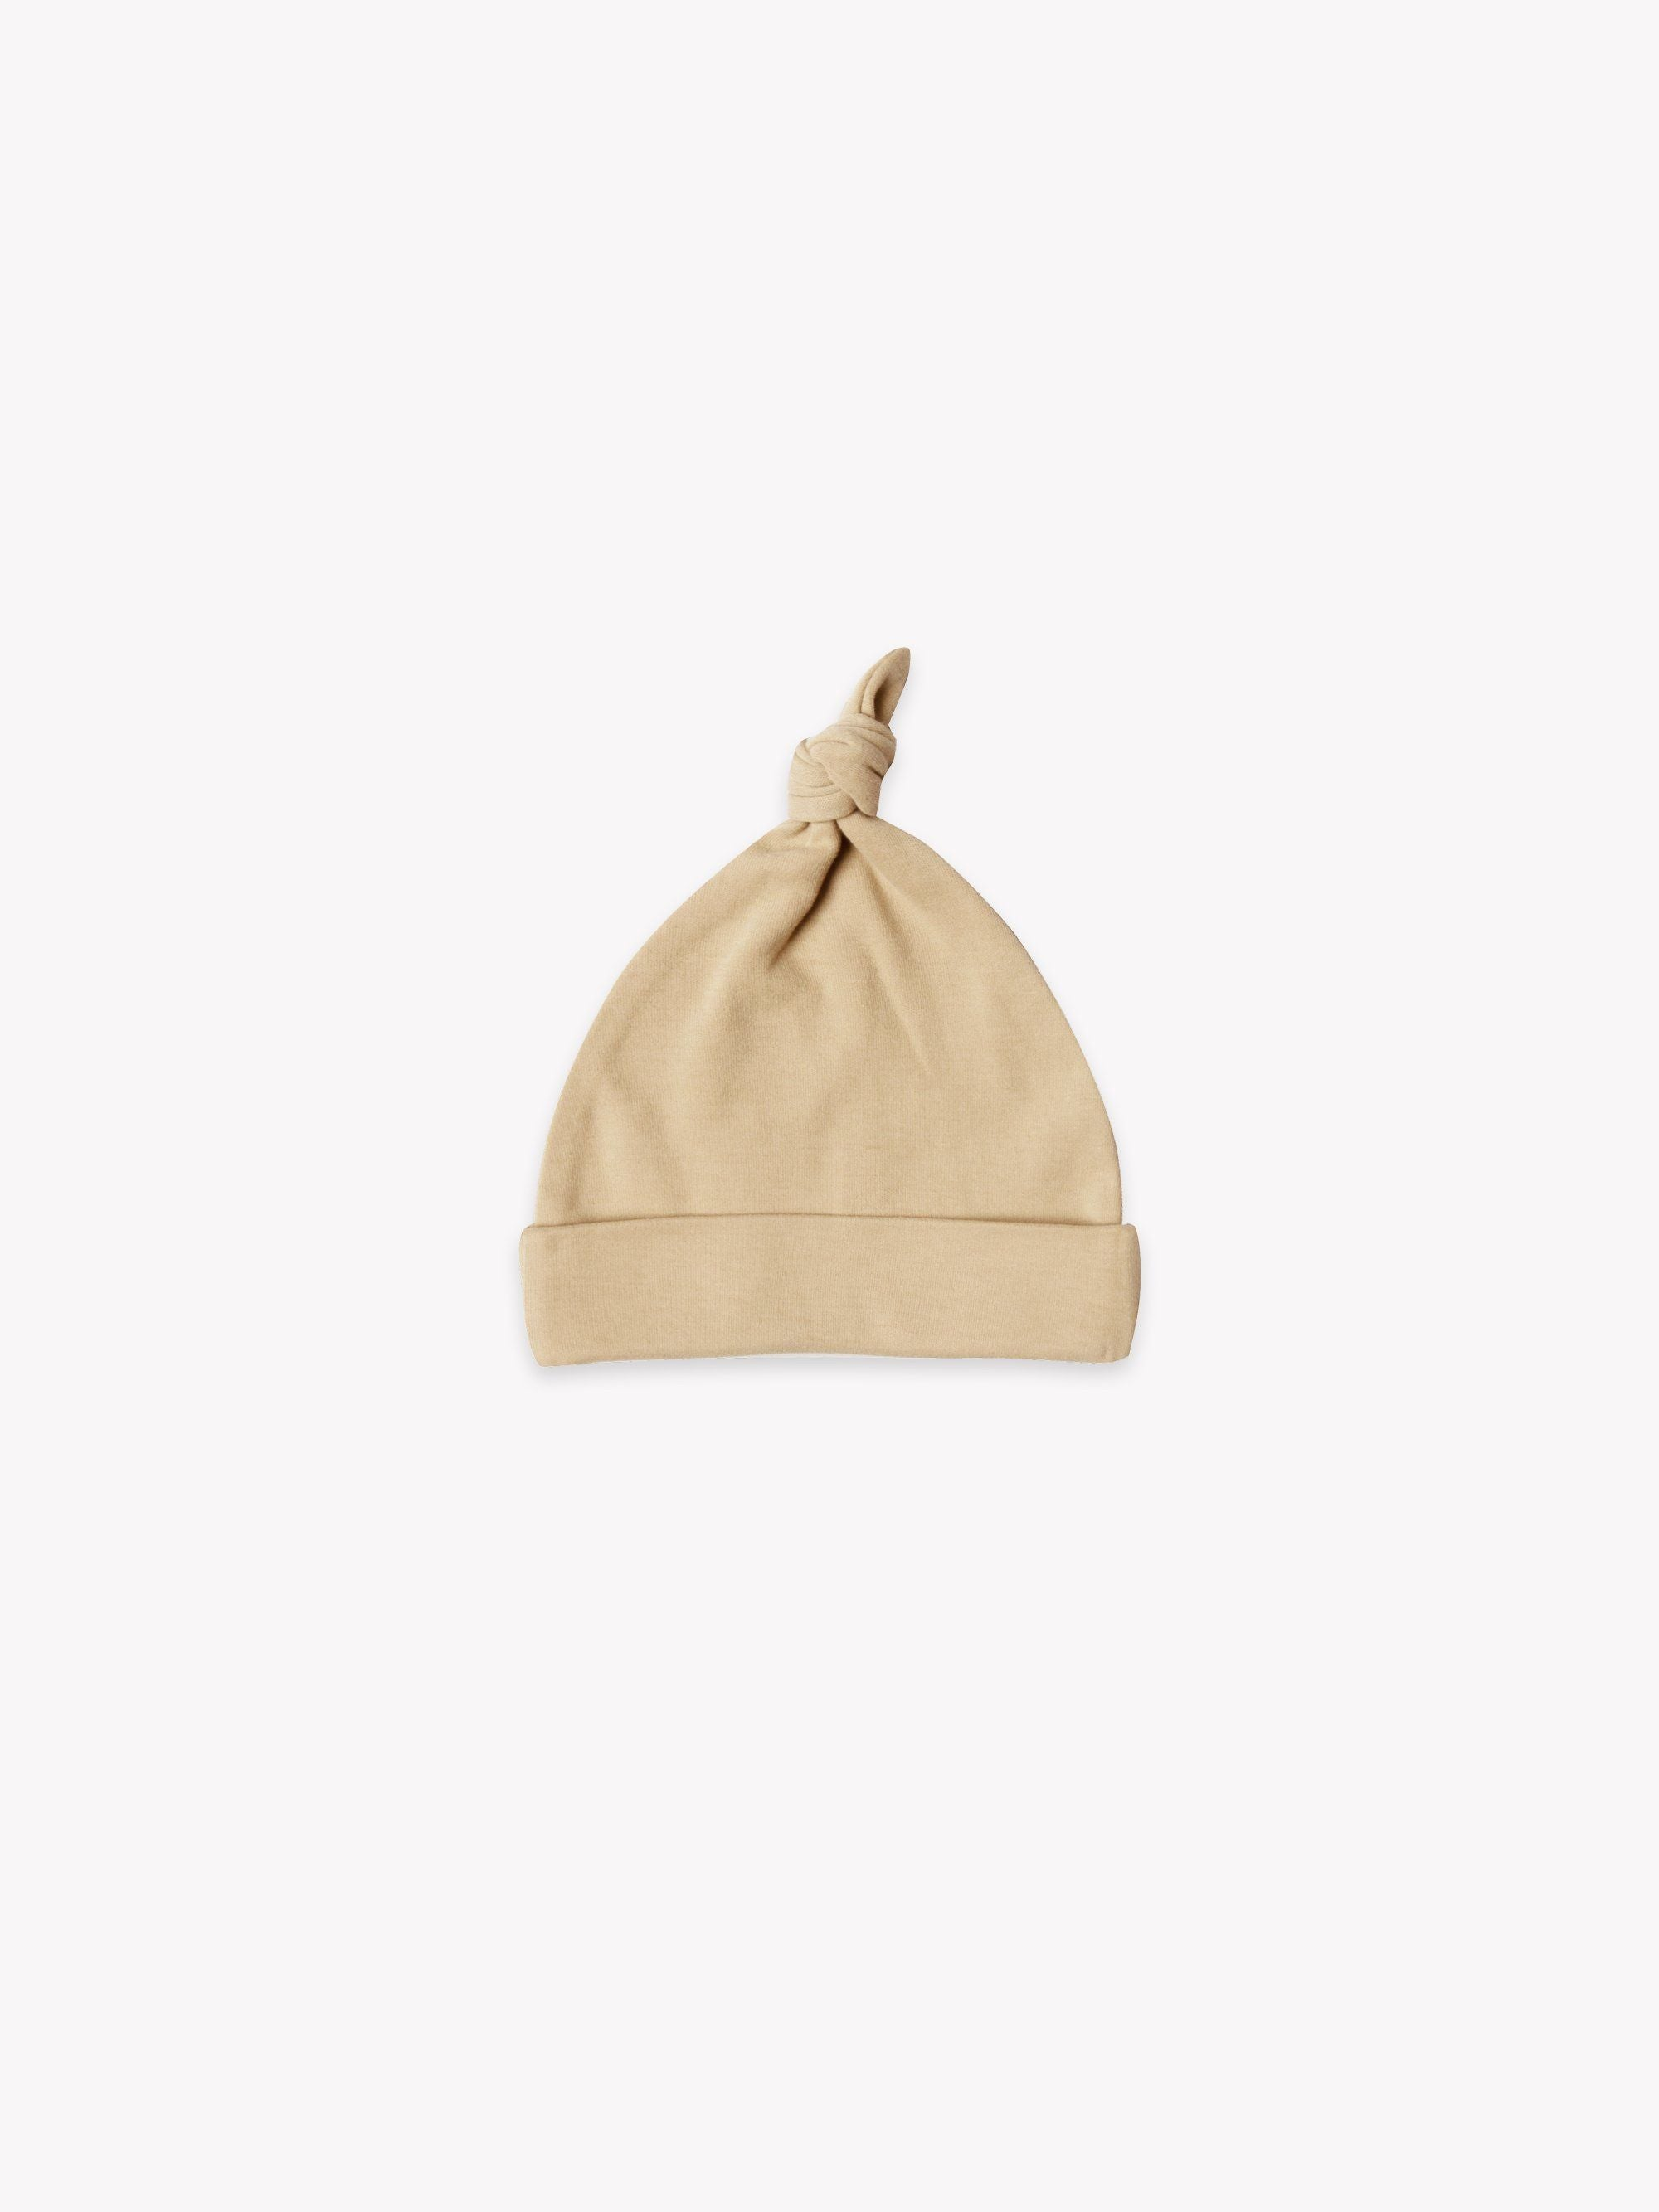 Quincy Mae Organic Knotted Baby Hat, Honey